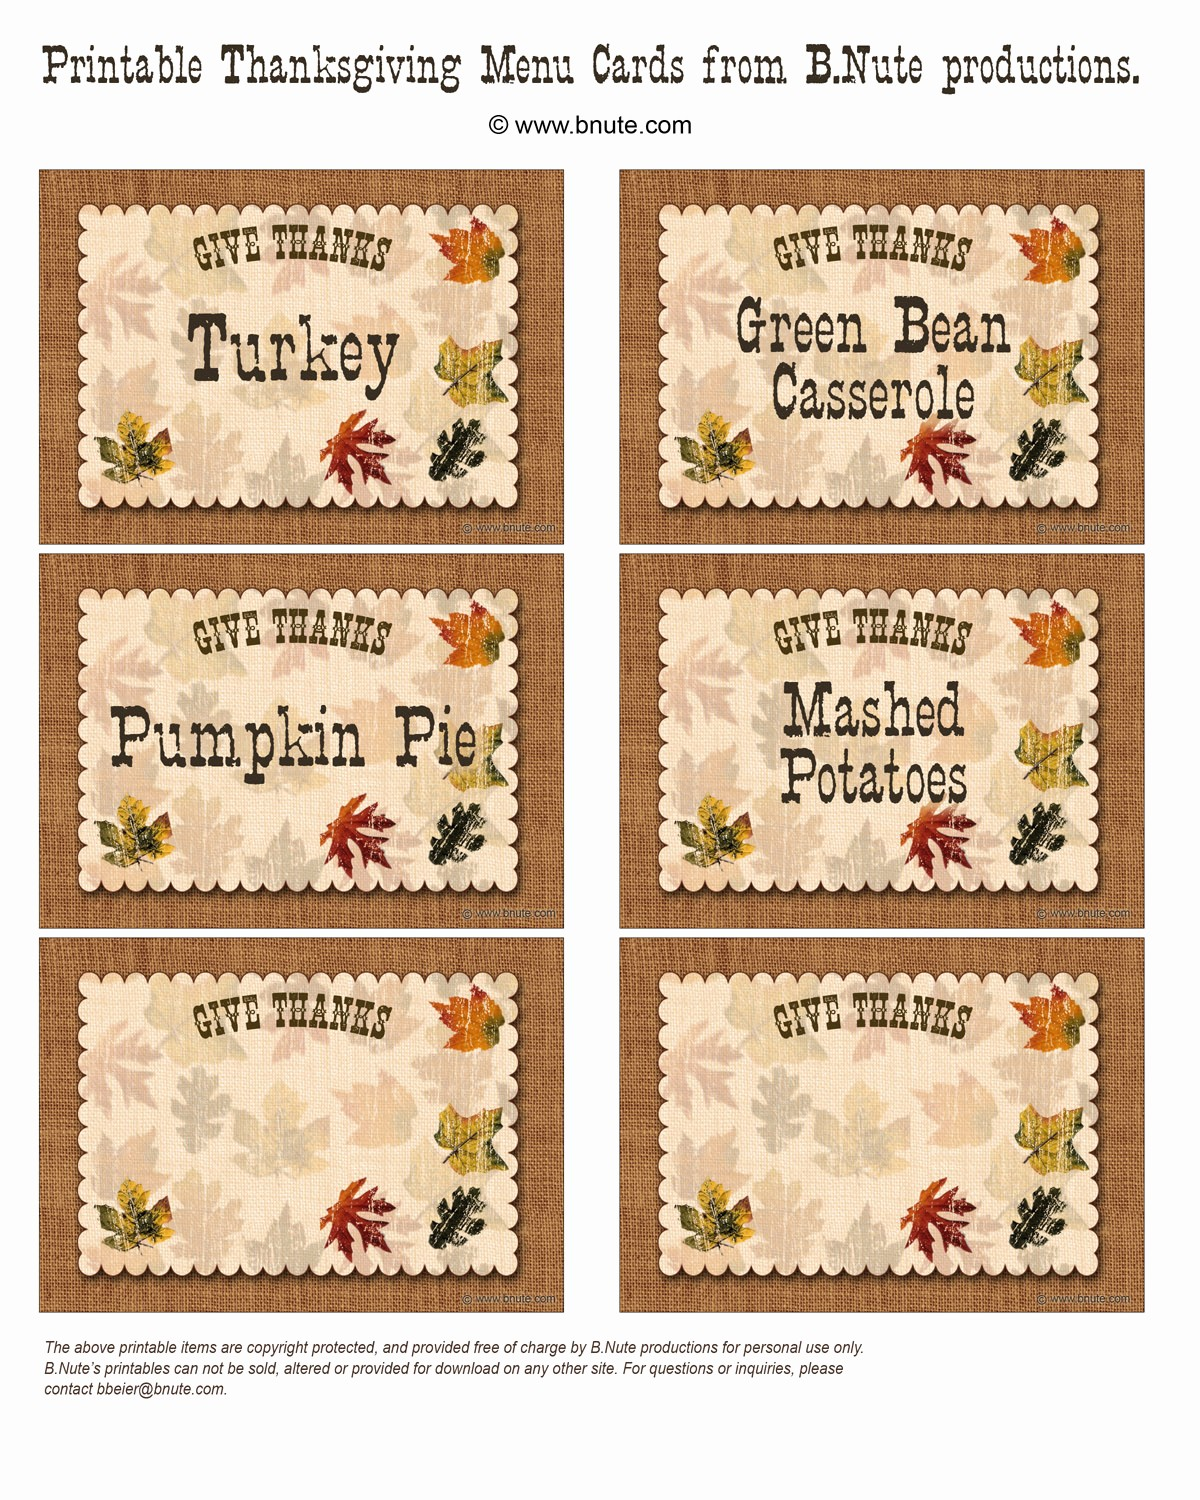 Free Printable Menu Card Templates Beautiful Bnute Productions Free Printable Give Thanks Thanksgiving